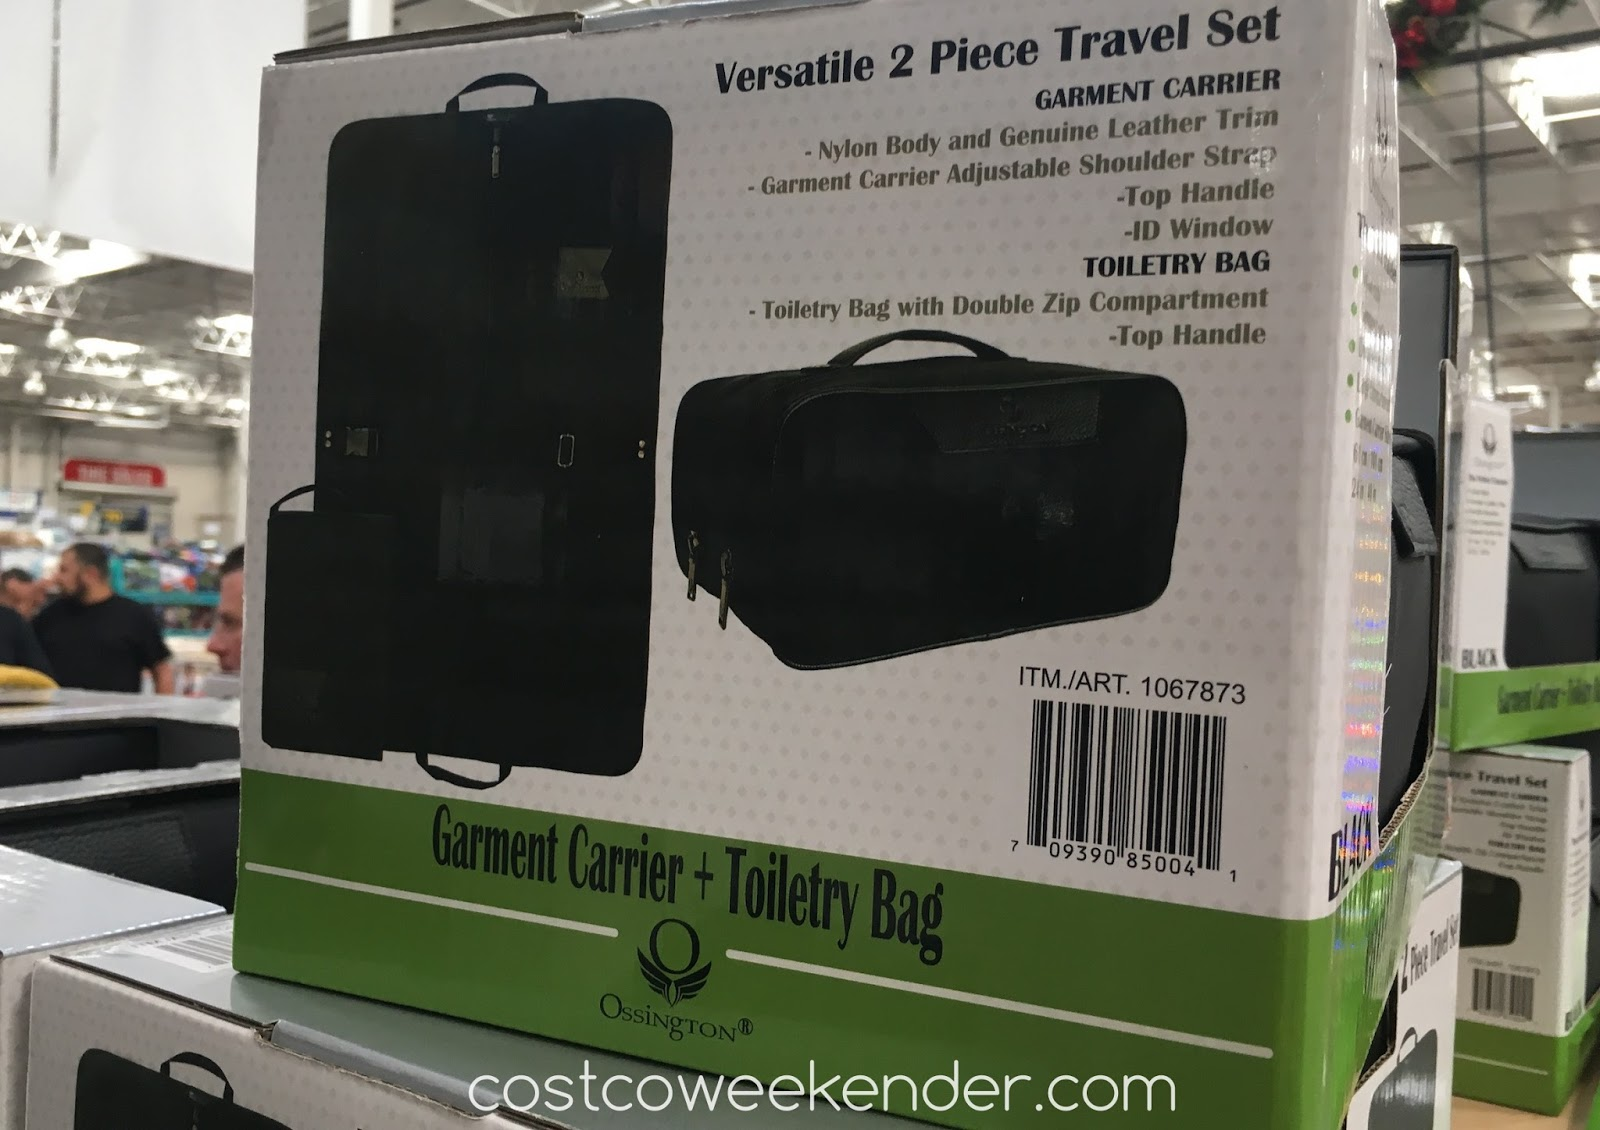 Costco 1067873 - Ossington Garment Carrier and Toiletry Bag - Everything you need for a quick weekend getaway